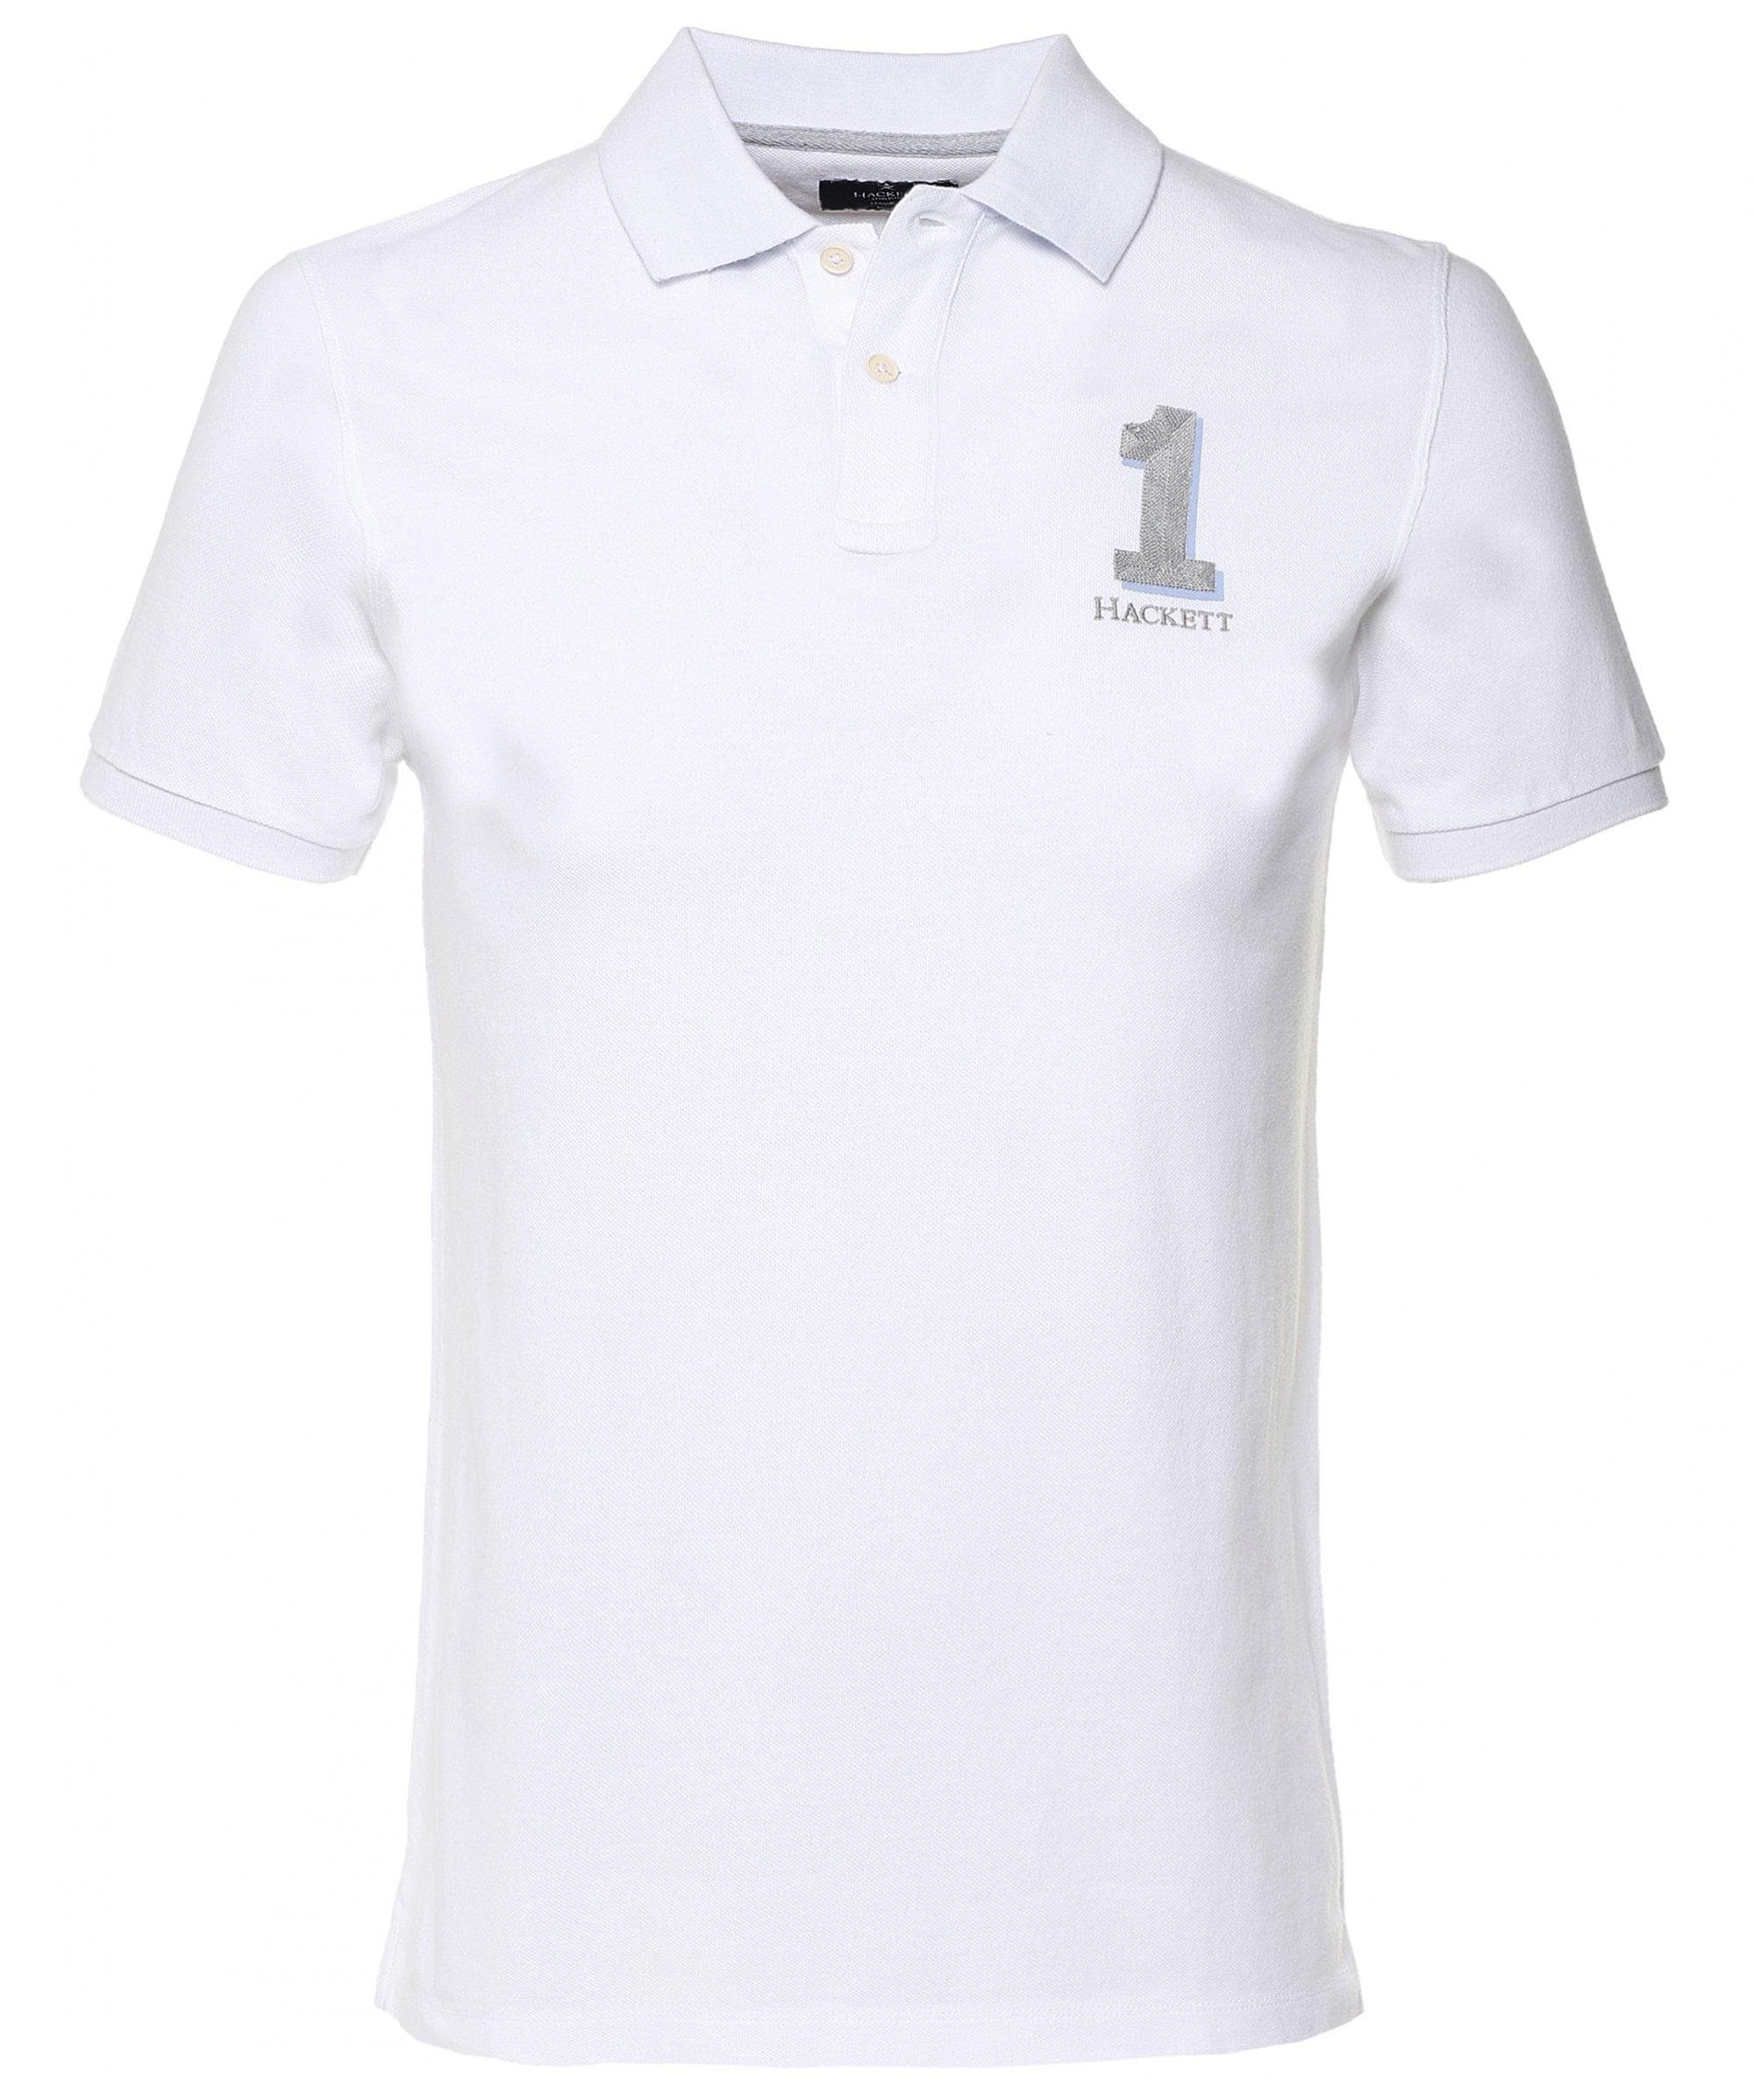 8697990a Hackett - White New Classic Polo Shirt for Men - Lyst. View fullscreen